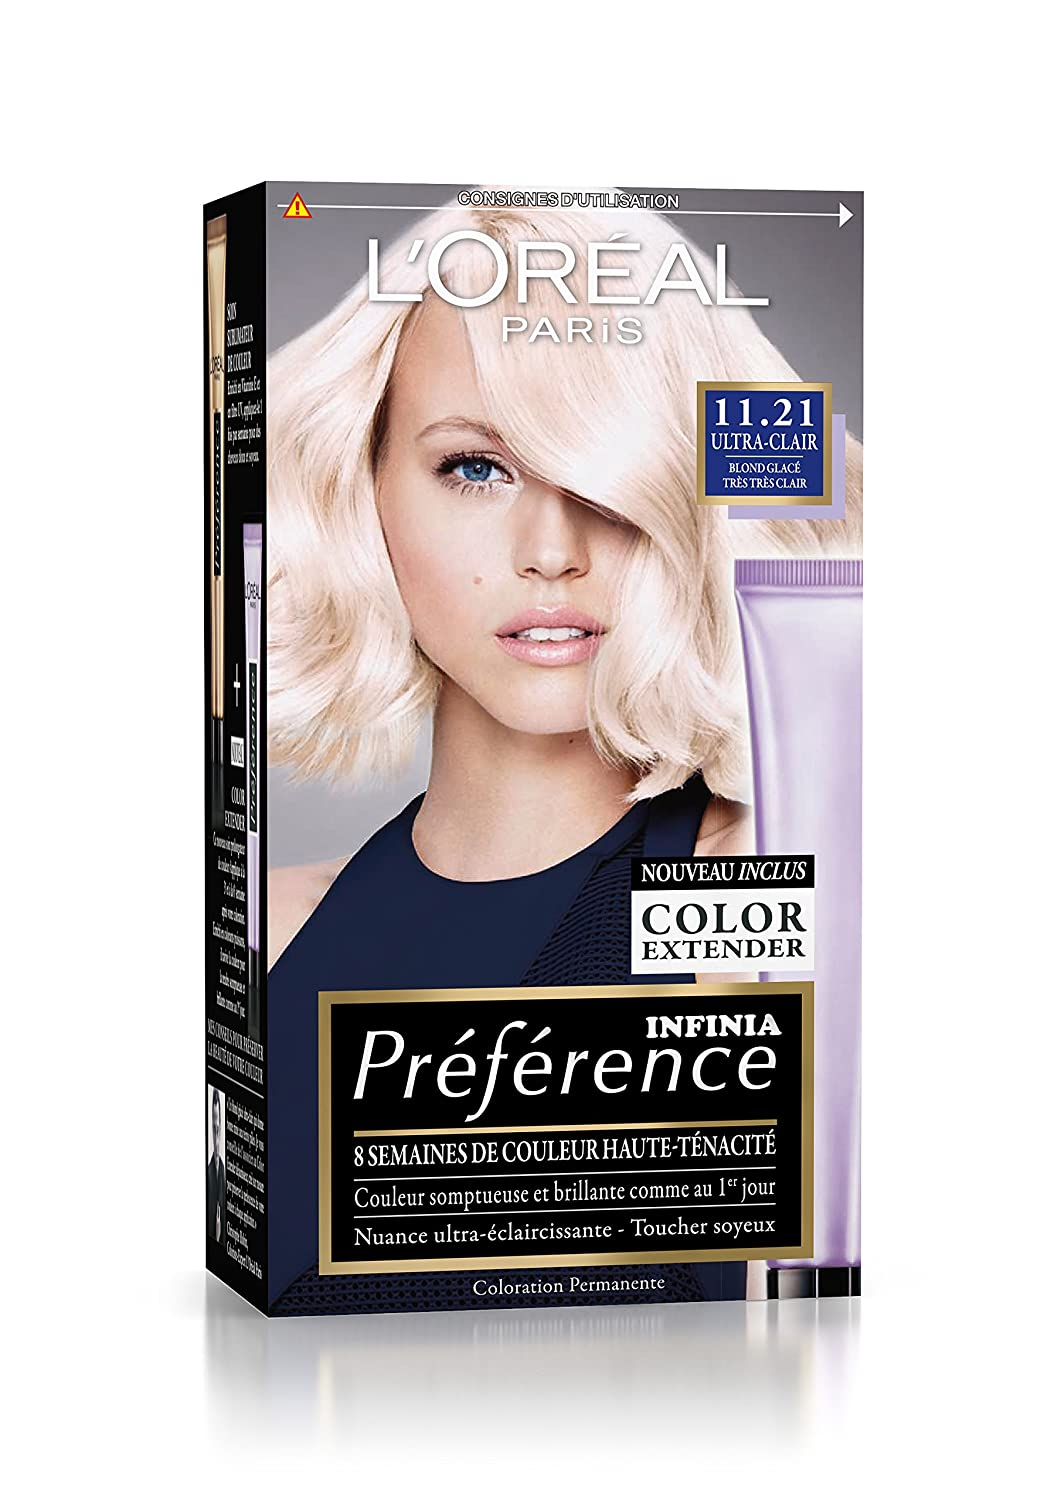 prfrence loral paris coloration permanente 1121 blond glac - Coloration Blond Platine